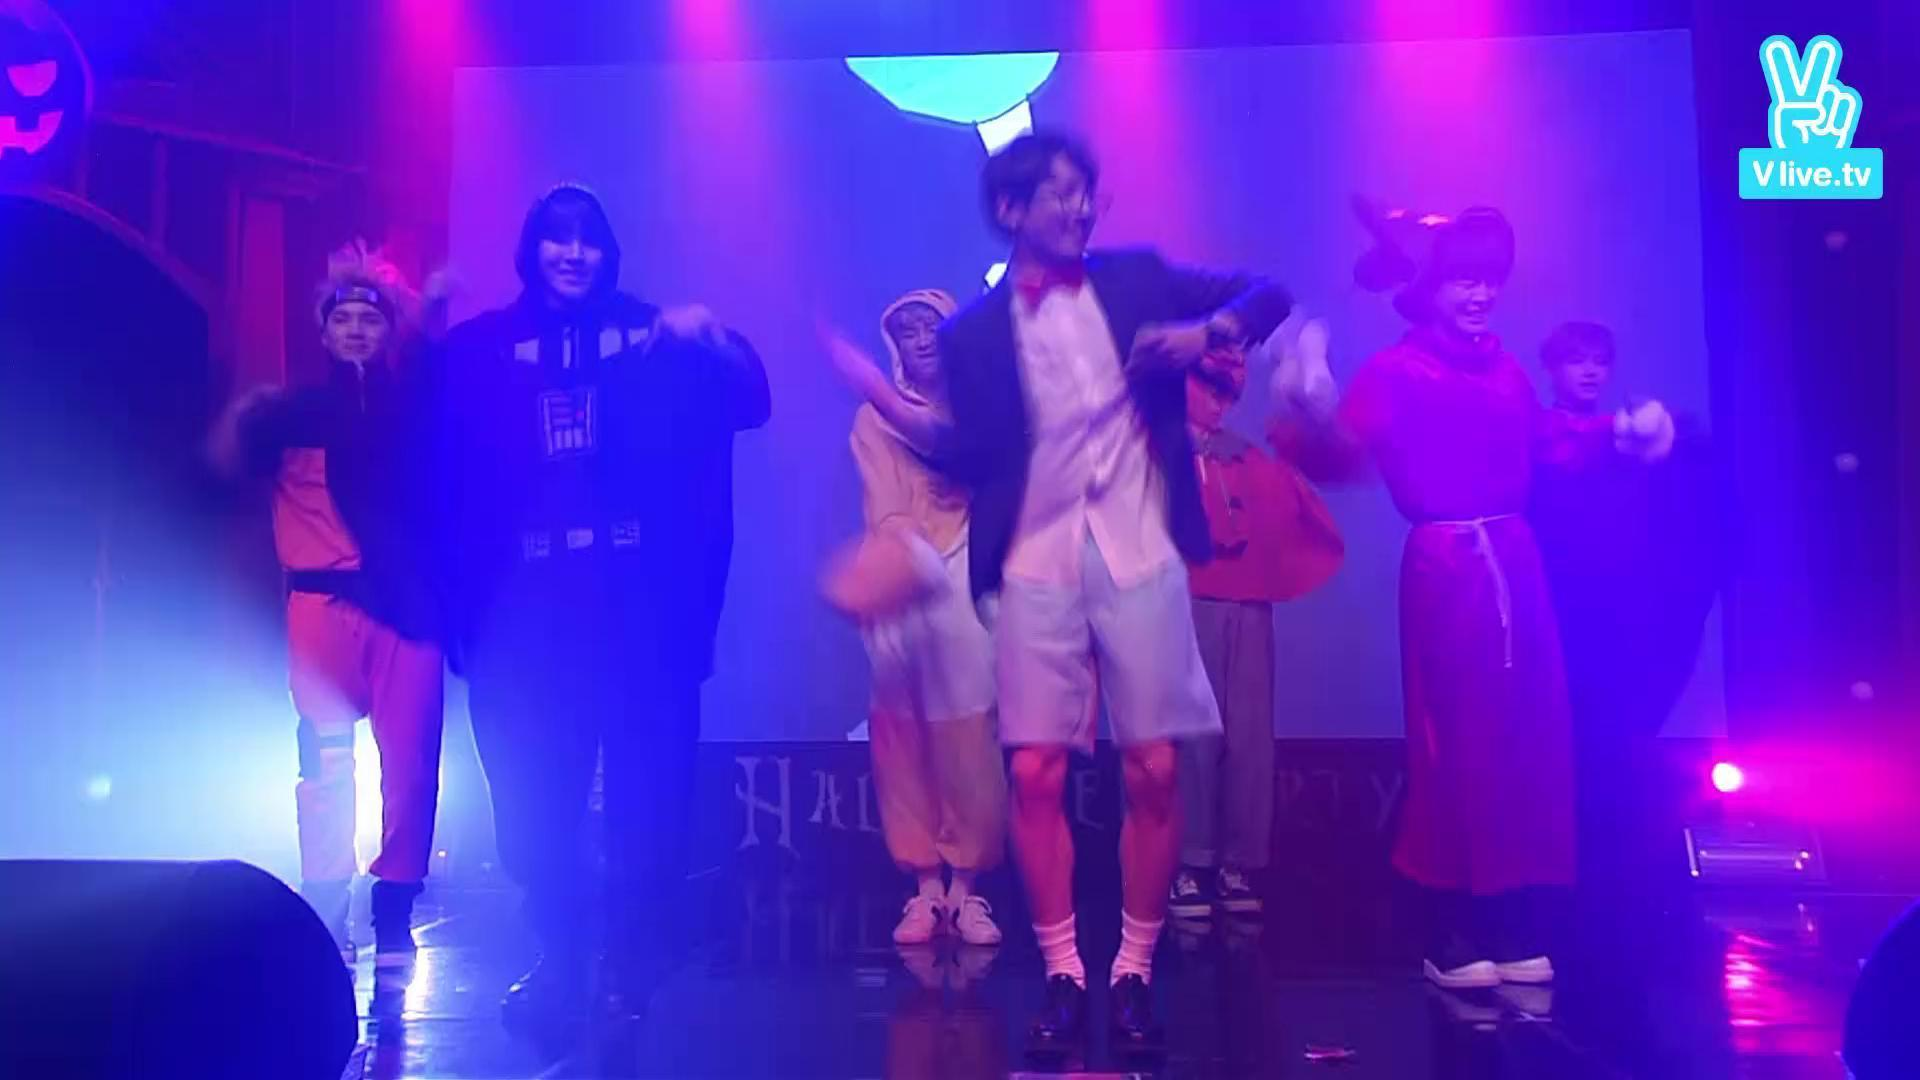 [V] Halloween Party with BTS - DOPE LIVE